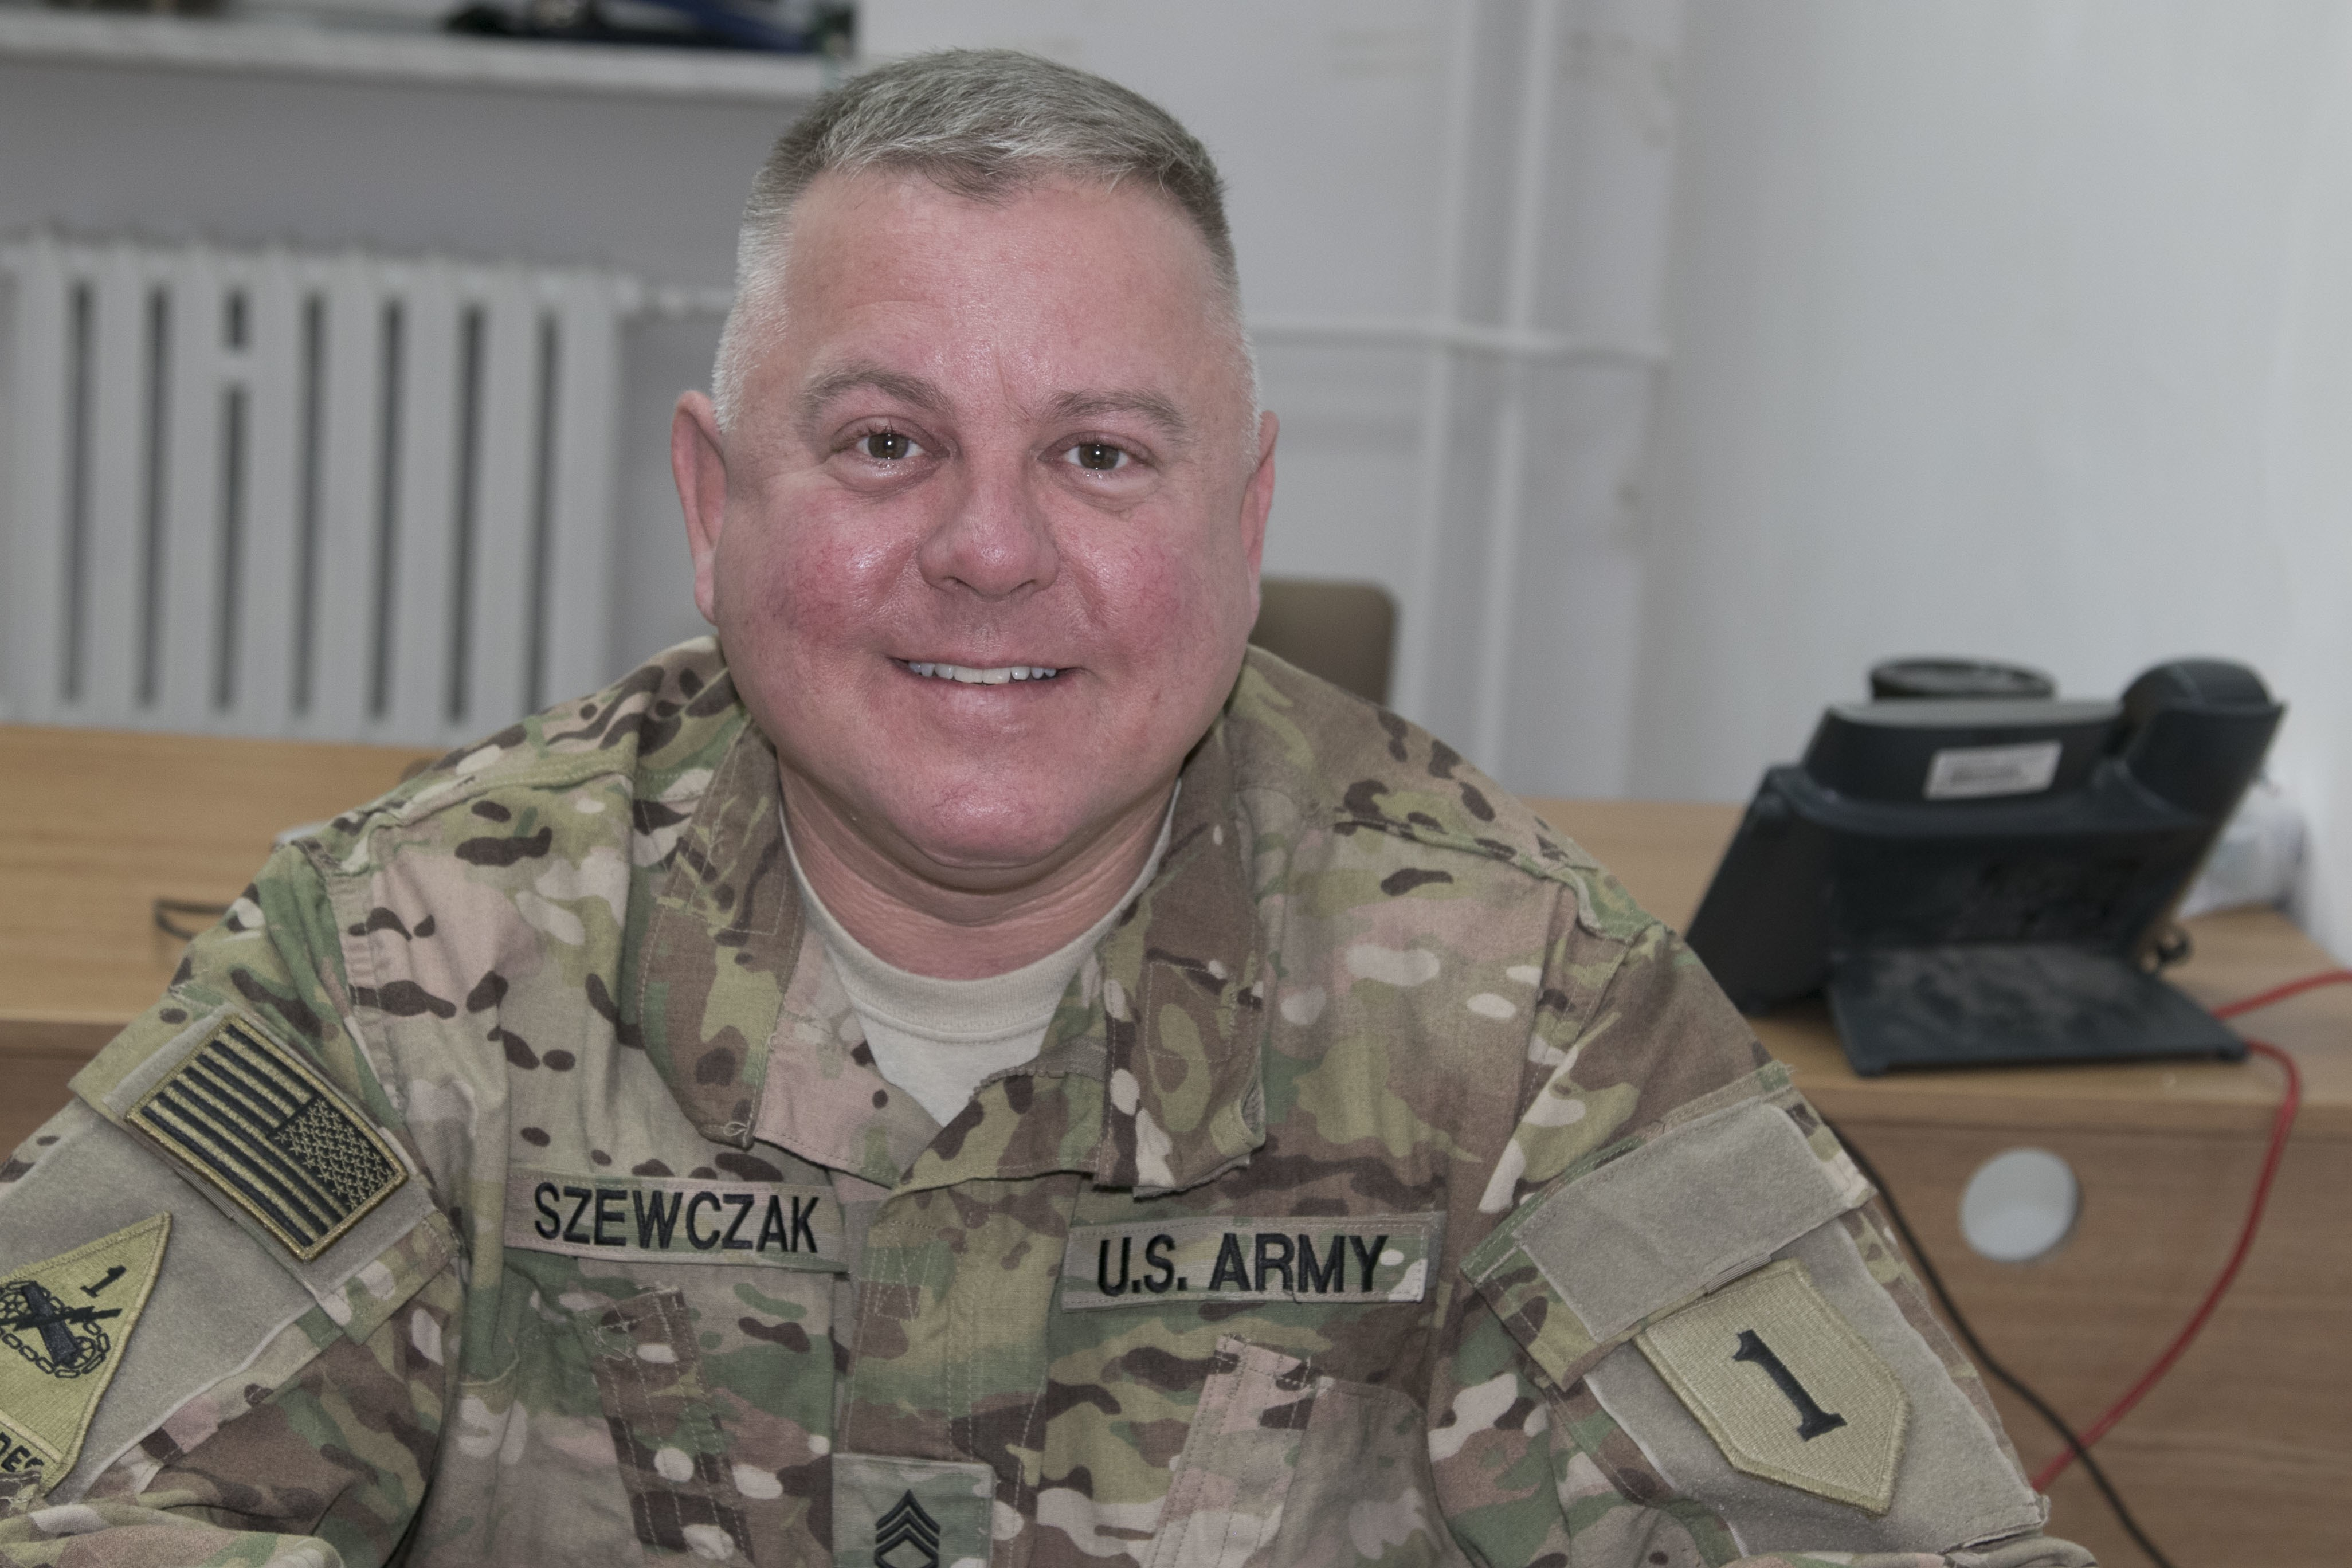 polish american soldiers mix patriotic service with heritage in